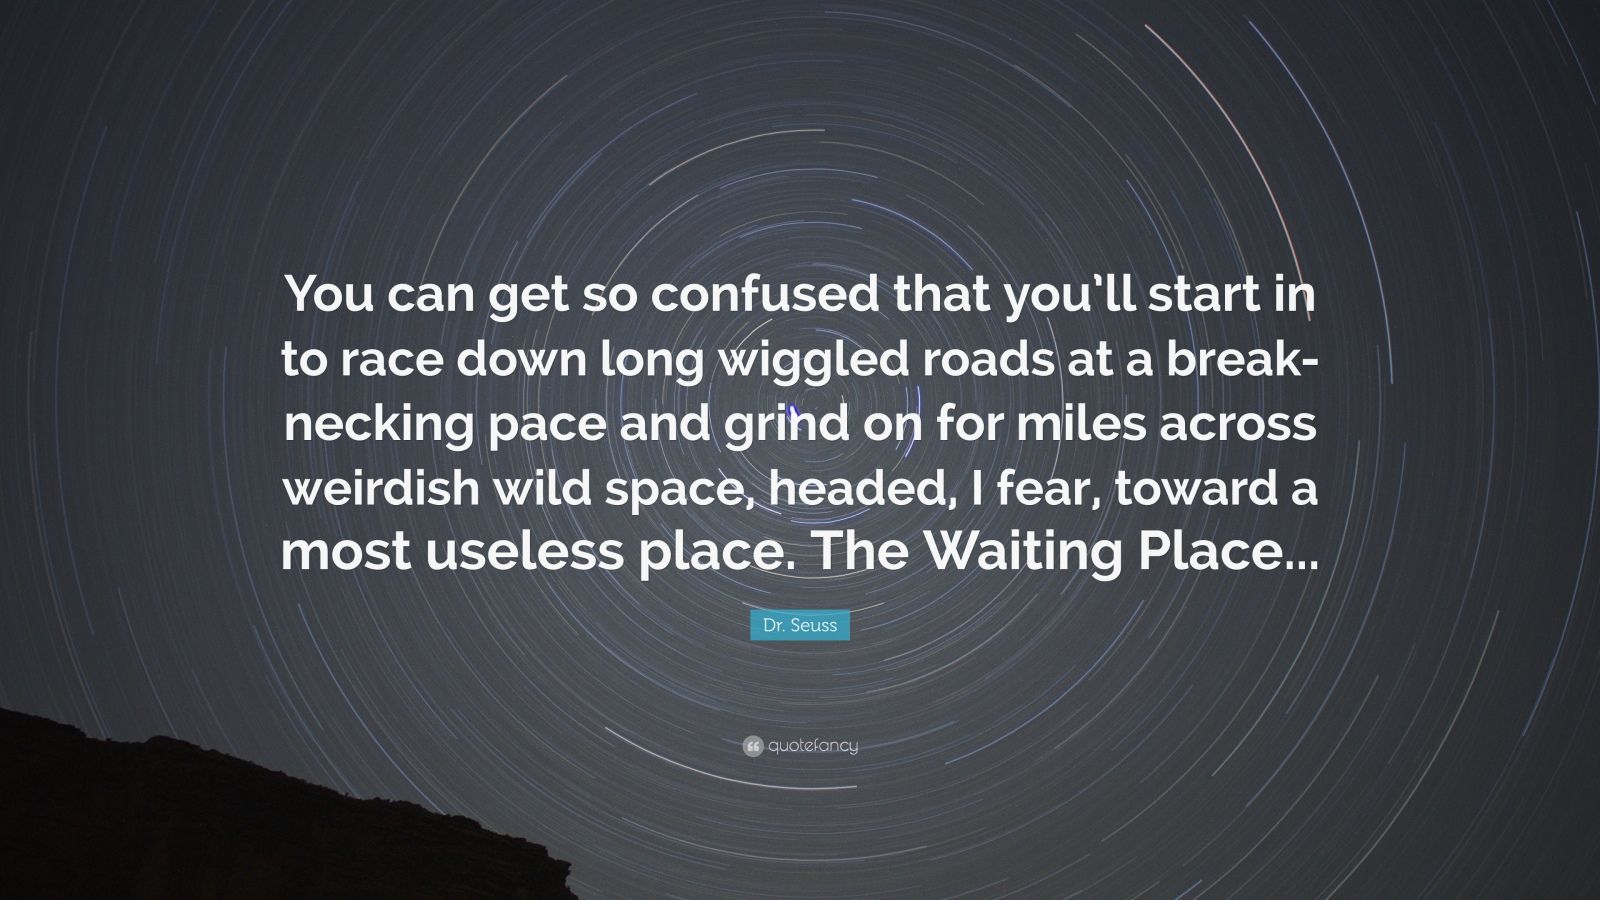 """Dr. Seuss Quote: """"You can get so confused that you'll start in to race down long wiggled roads at a break-necking pace and grind on for miles across weirdish wild space, headed, I fear, toward a most useless place. The Waiting Place..."""""""